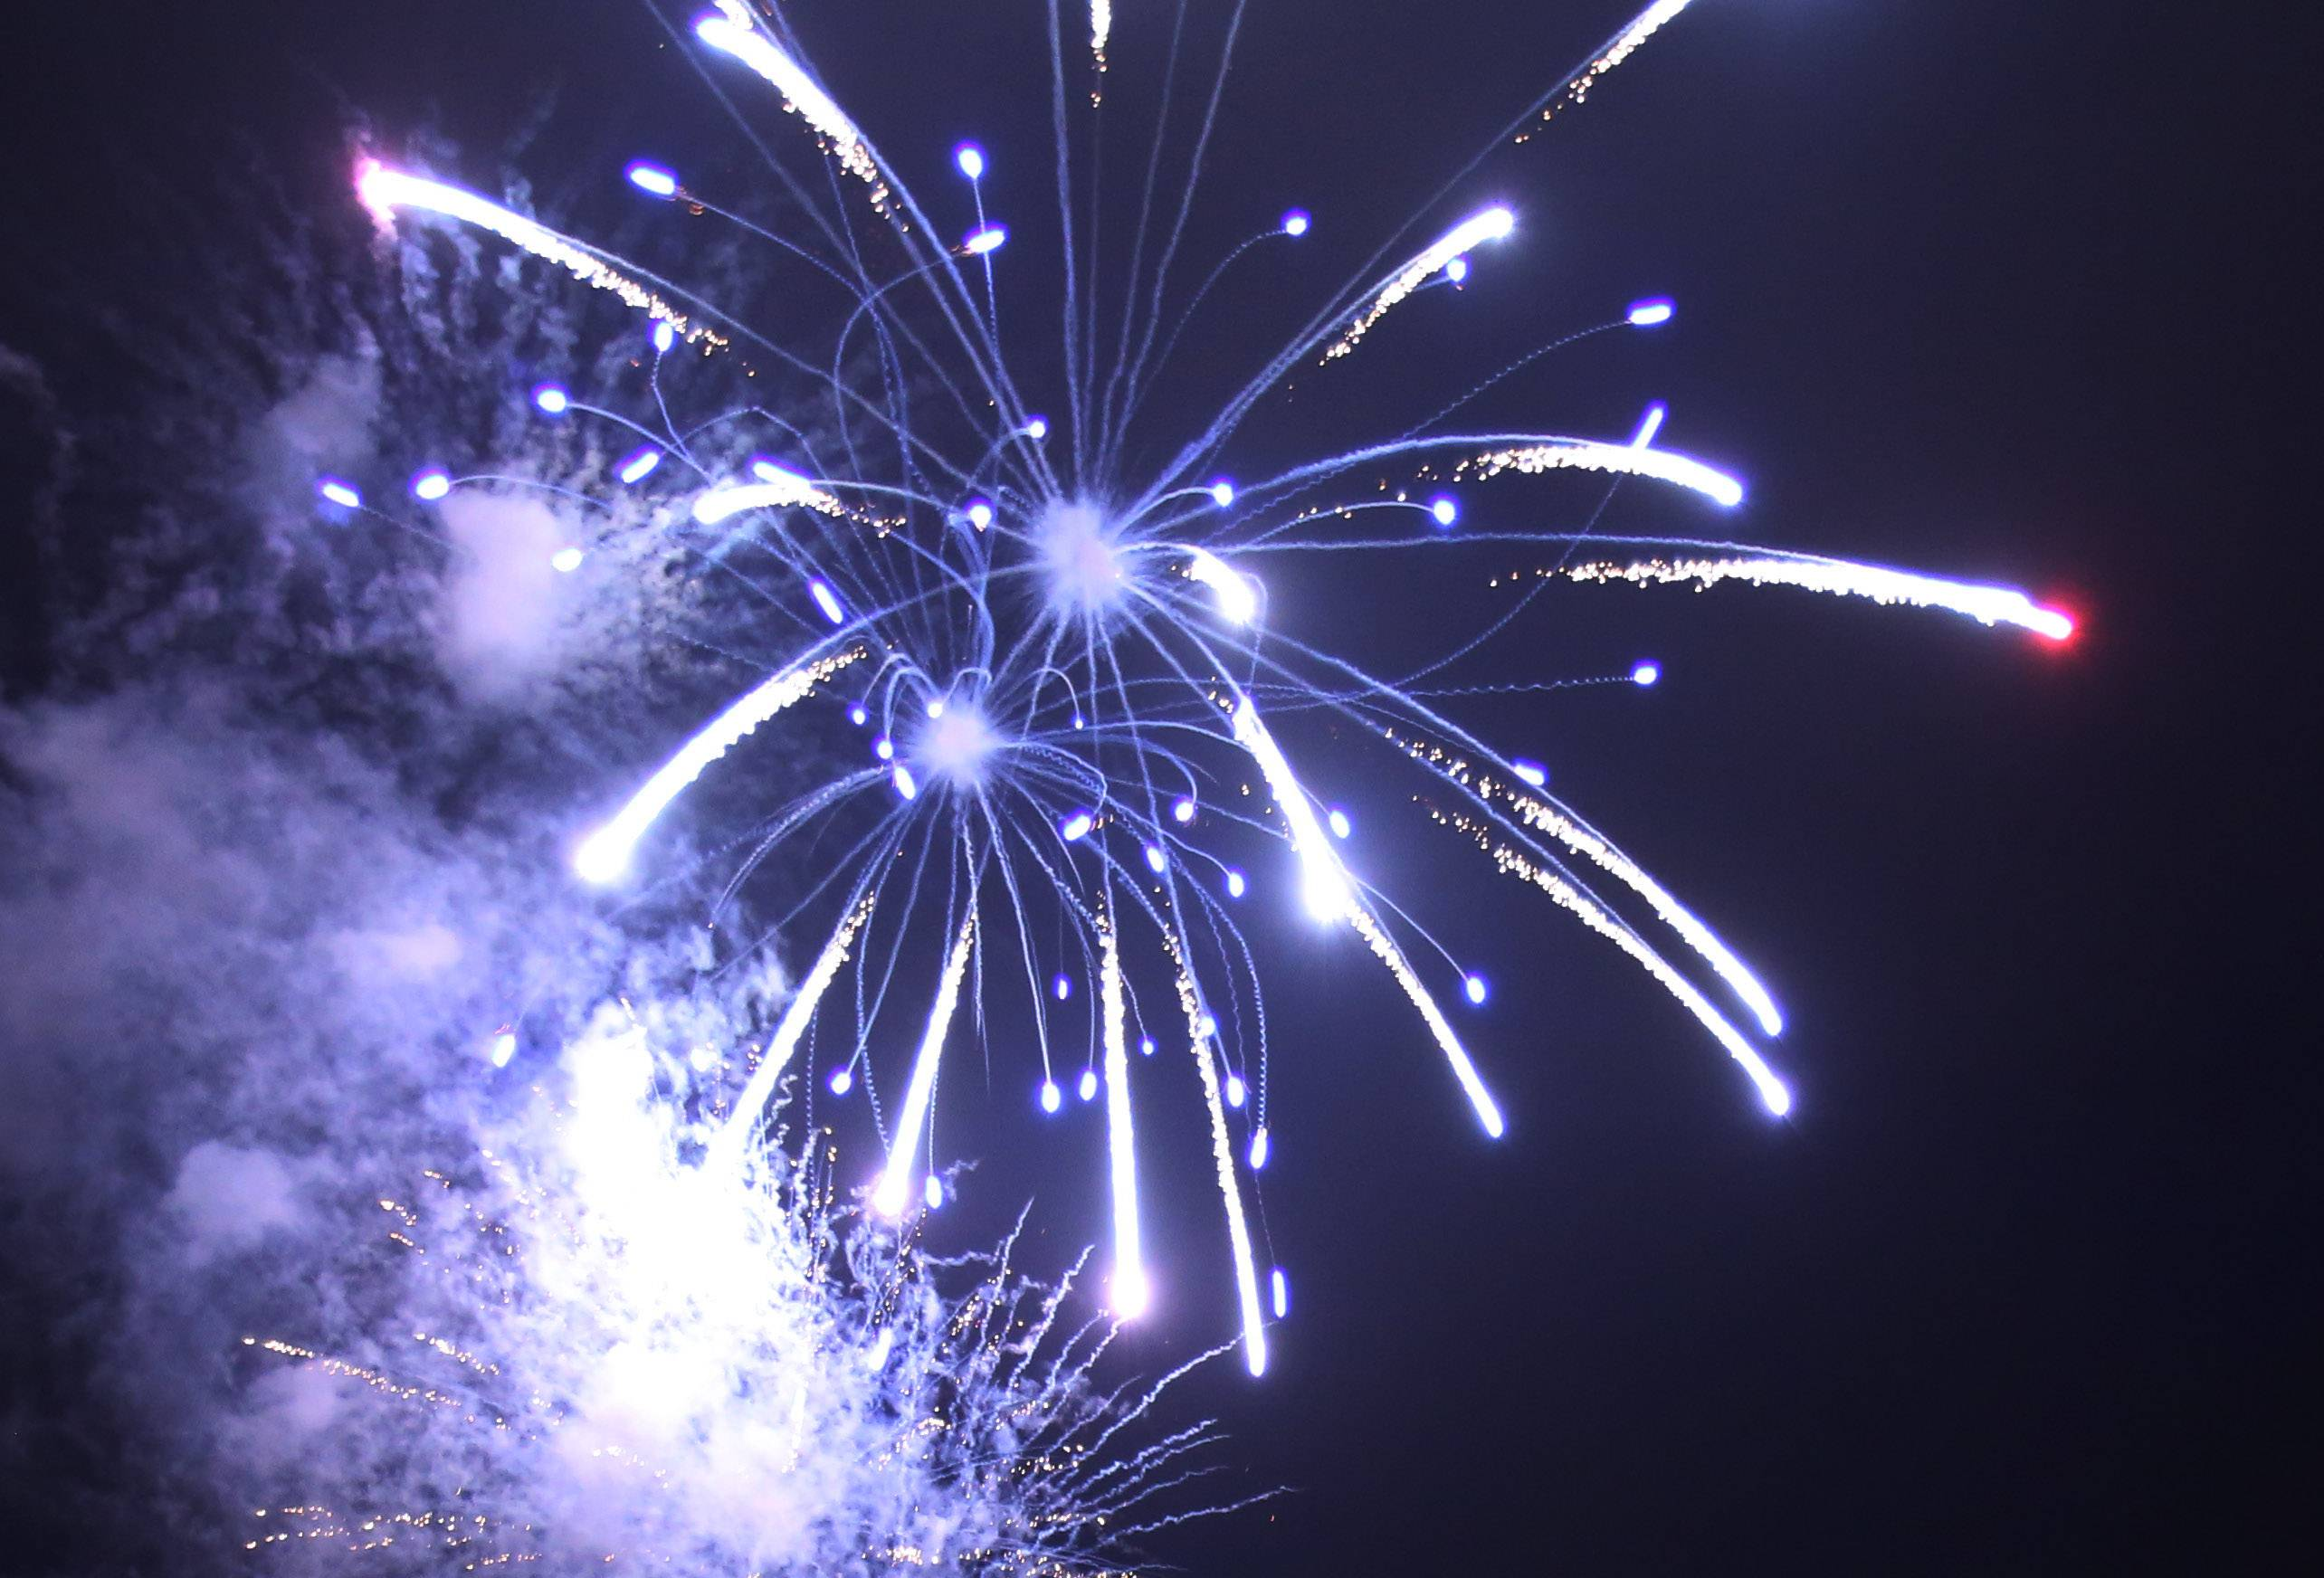 Fireworks light up the skies over Wauconda.